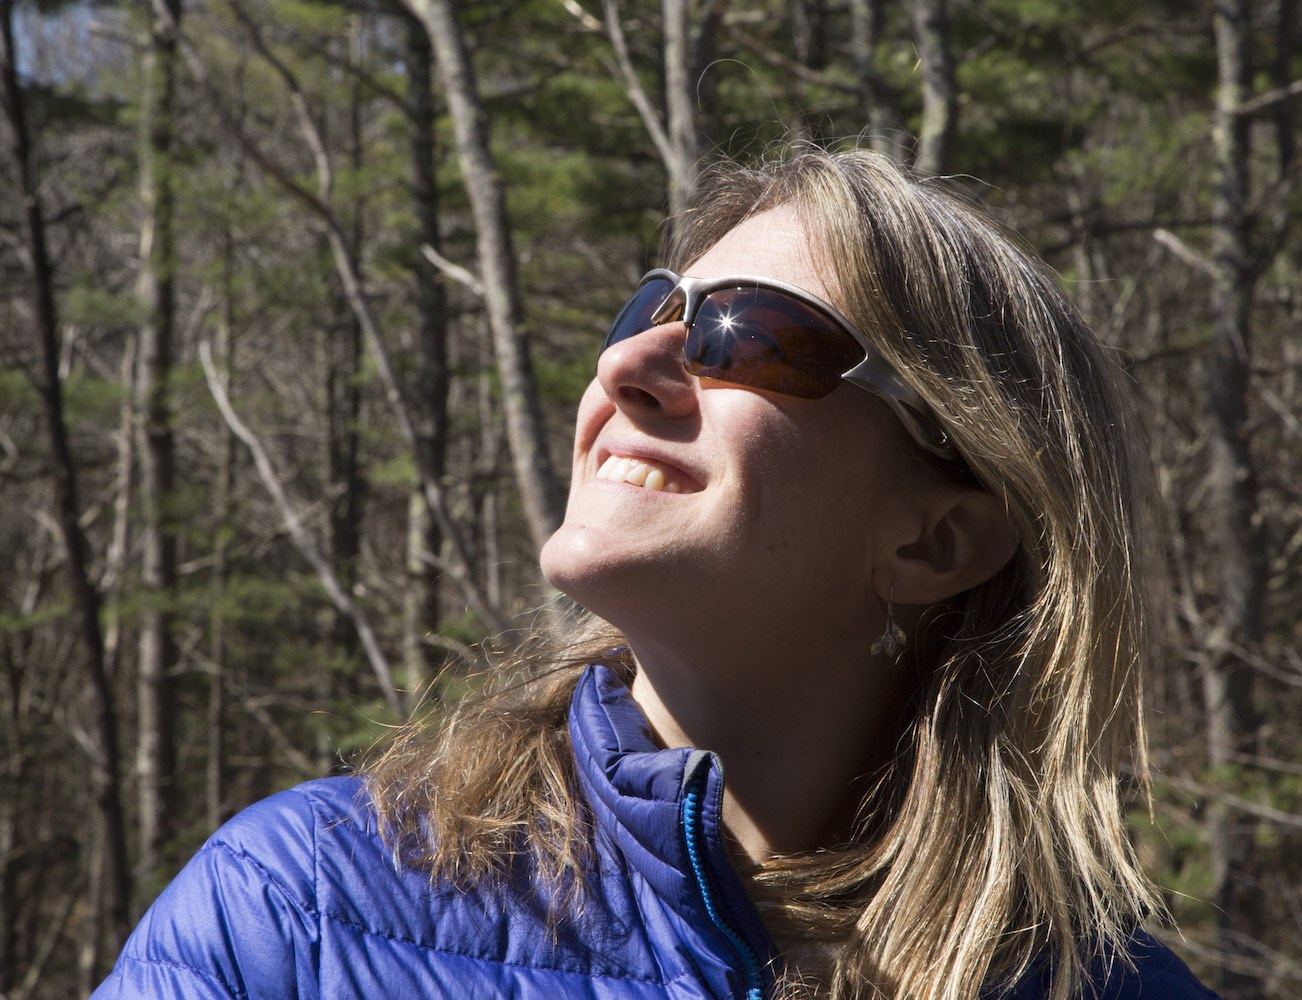 Sightsaver Sunglasses – Sunscreen For Your Eyes